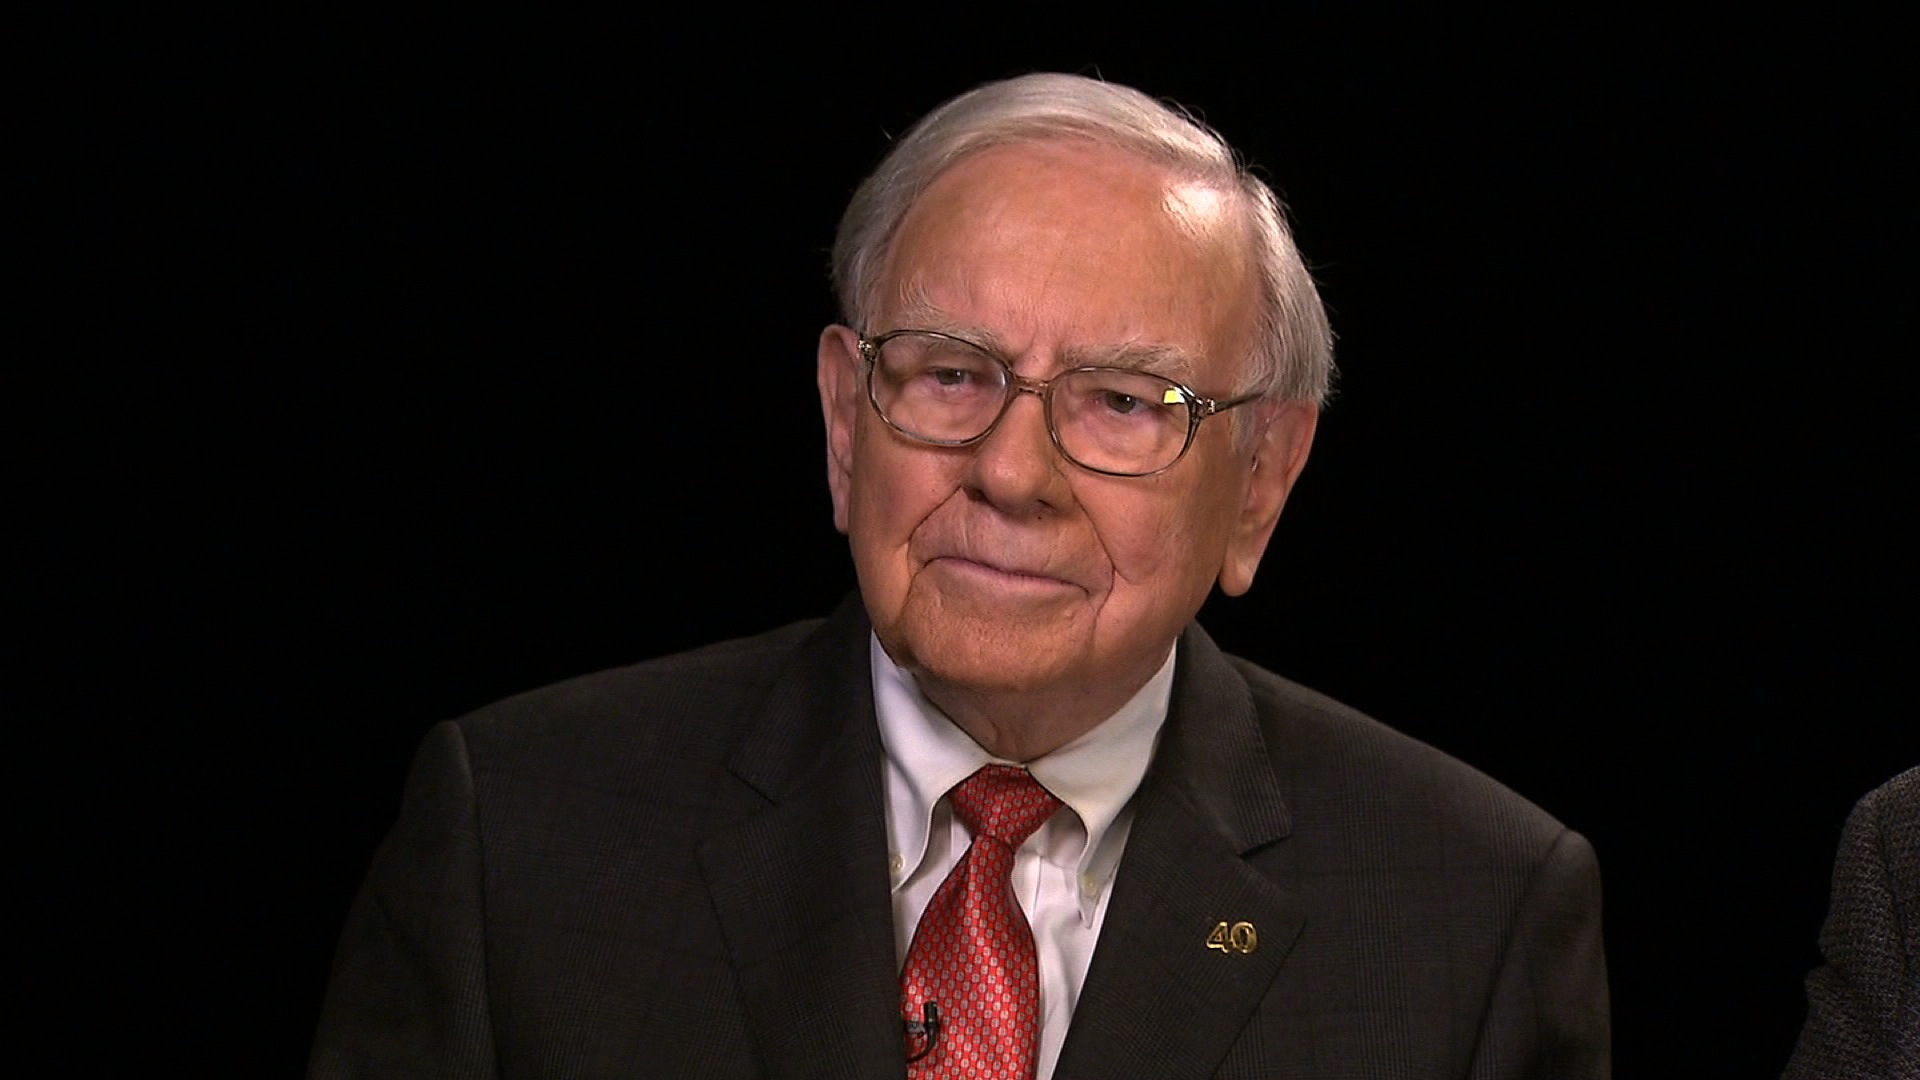 Warren Buffet Offering $1 Billion For Perfect March Madness Bracket